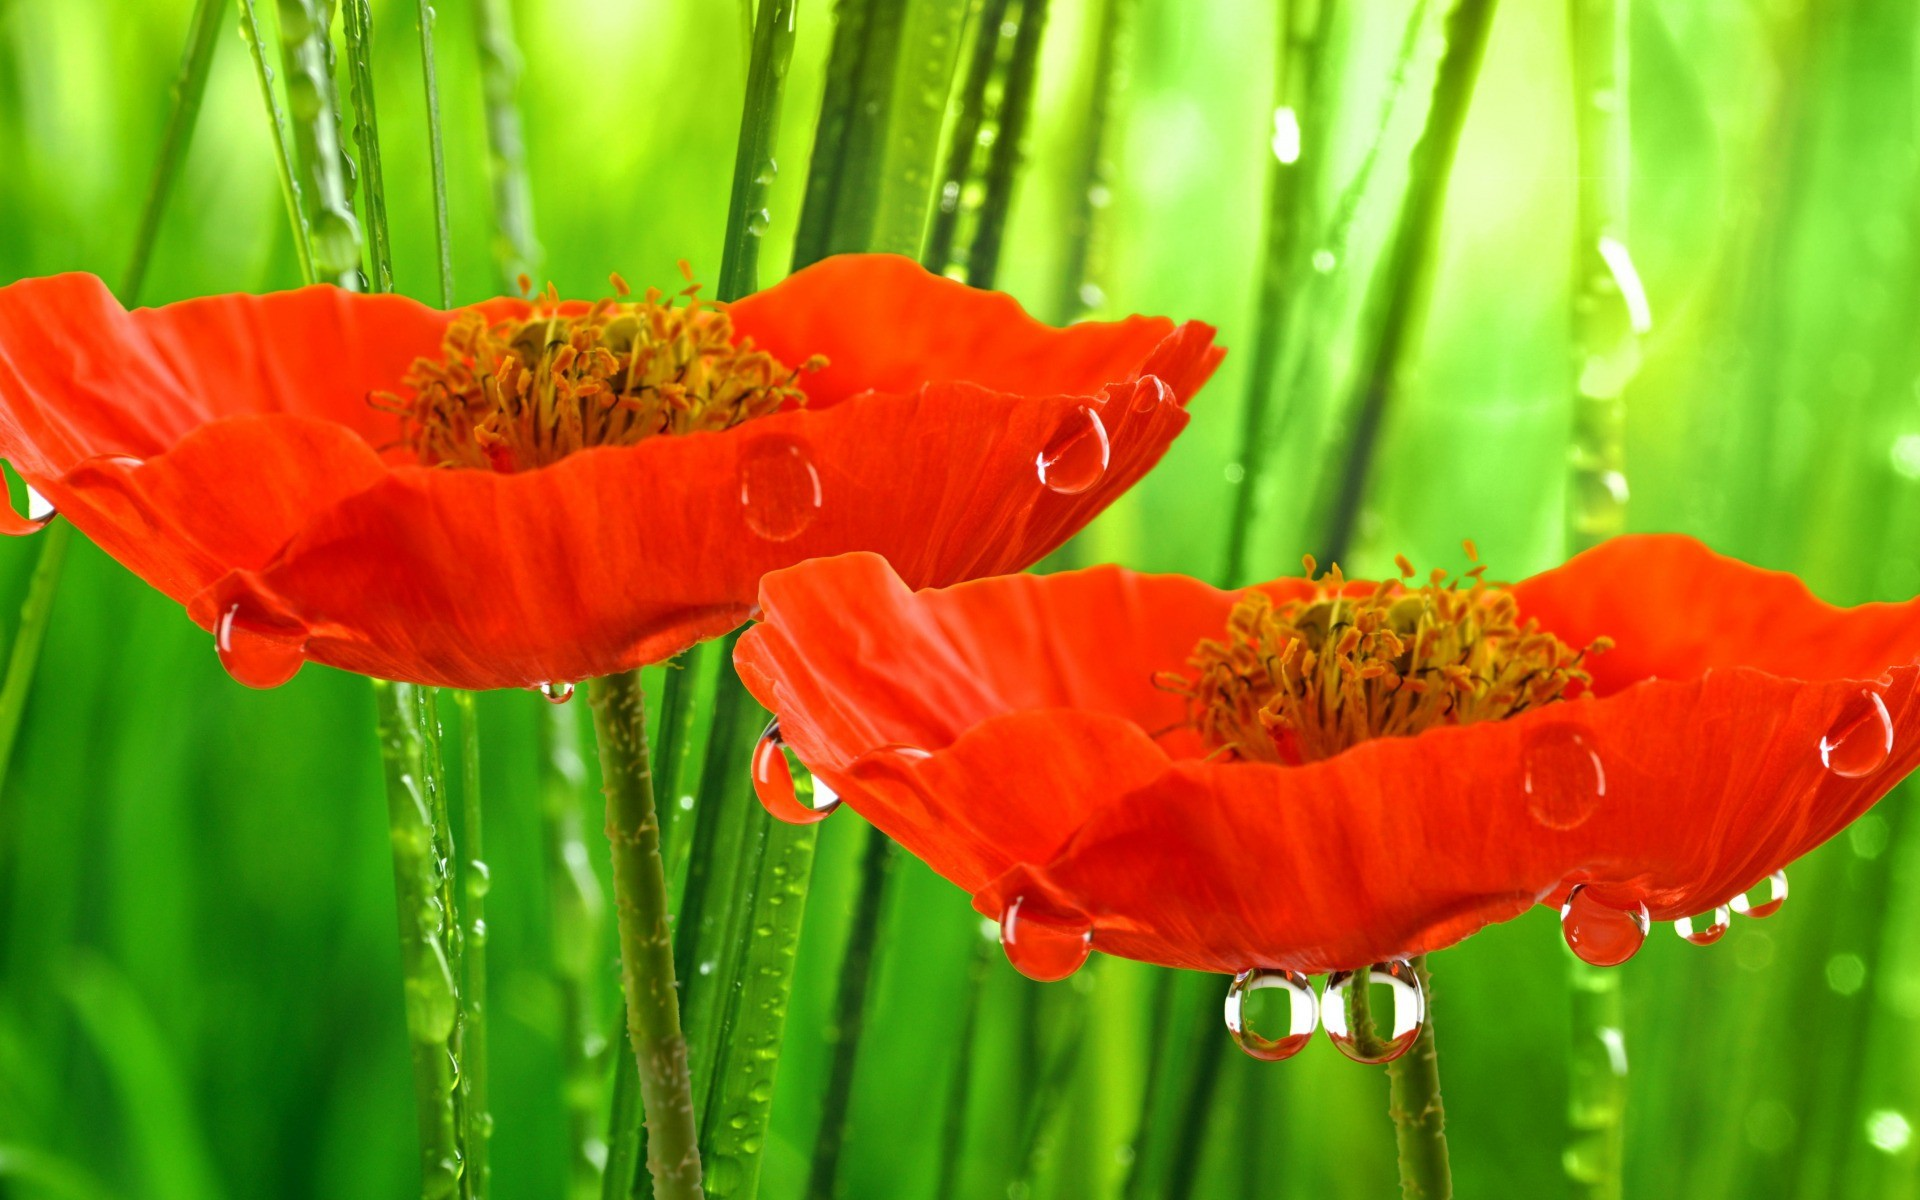 Falling Rain Wallpapers Desktop Flowers In The Rain Wallpapers High Quality Download Free